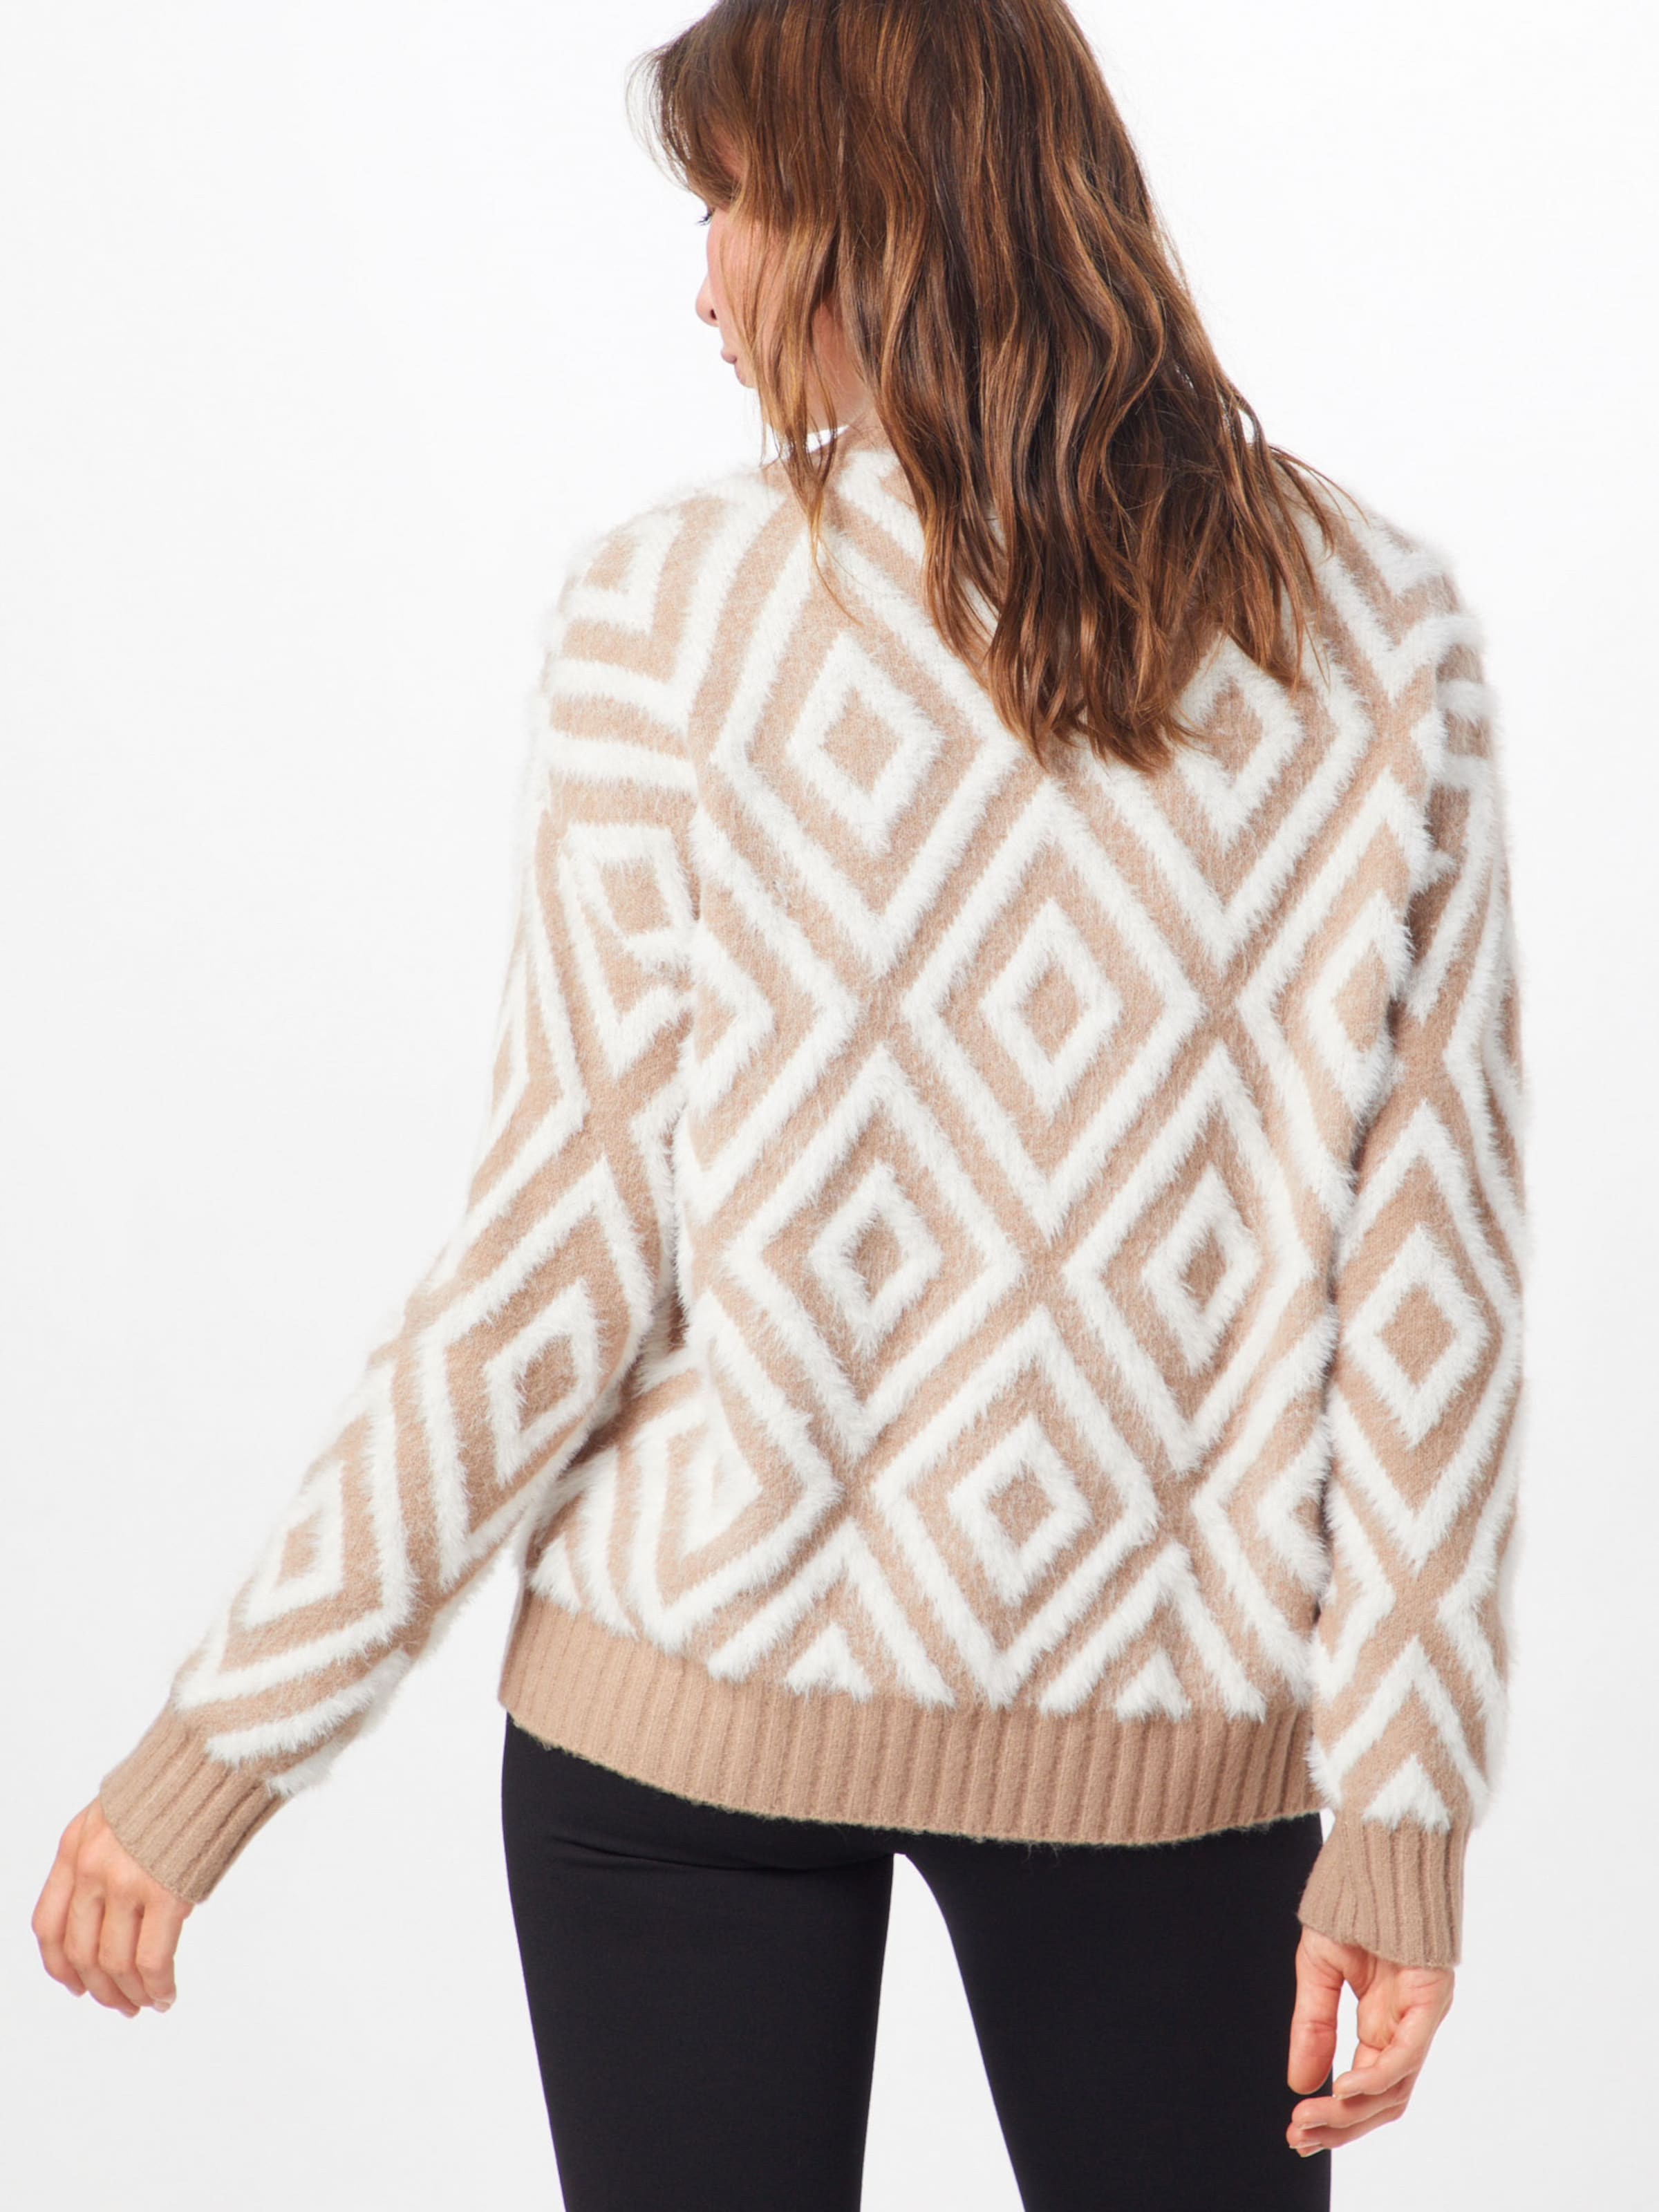 Union MarronBlanc Fashion 'dirk' Pull En over xBCedo